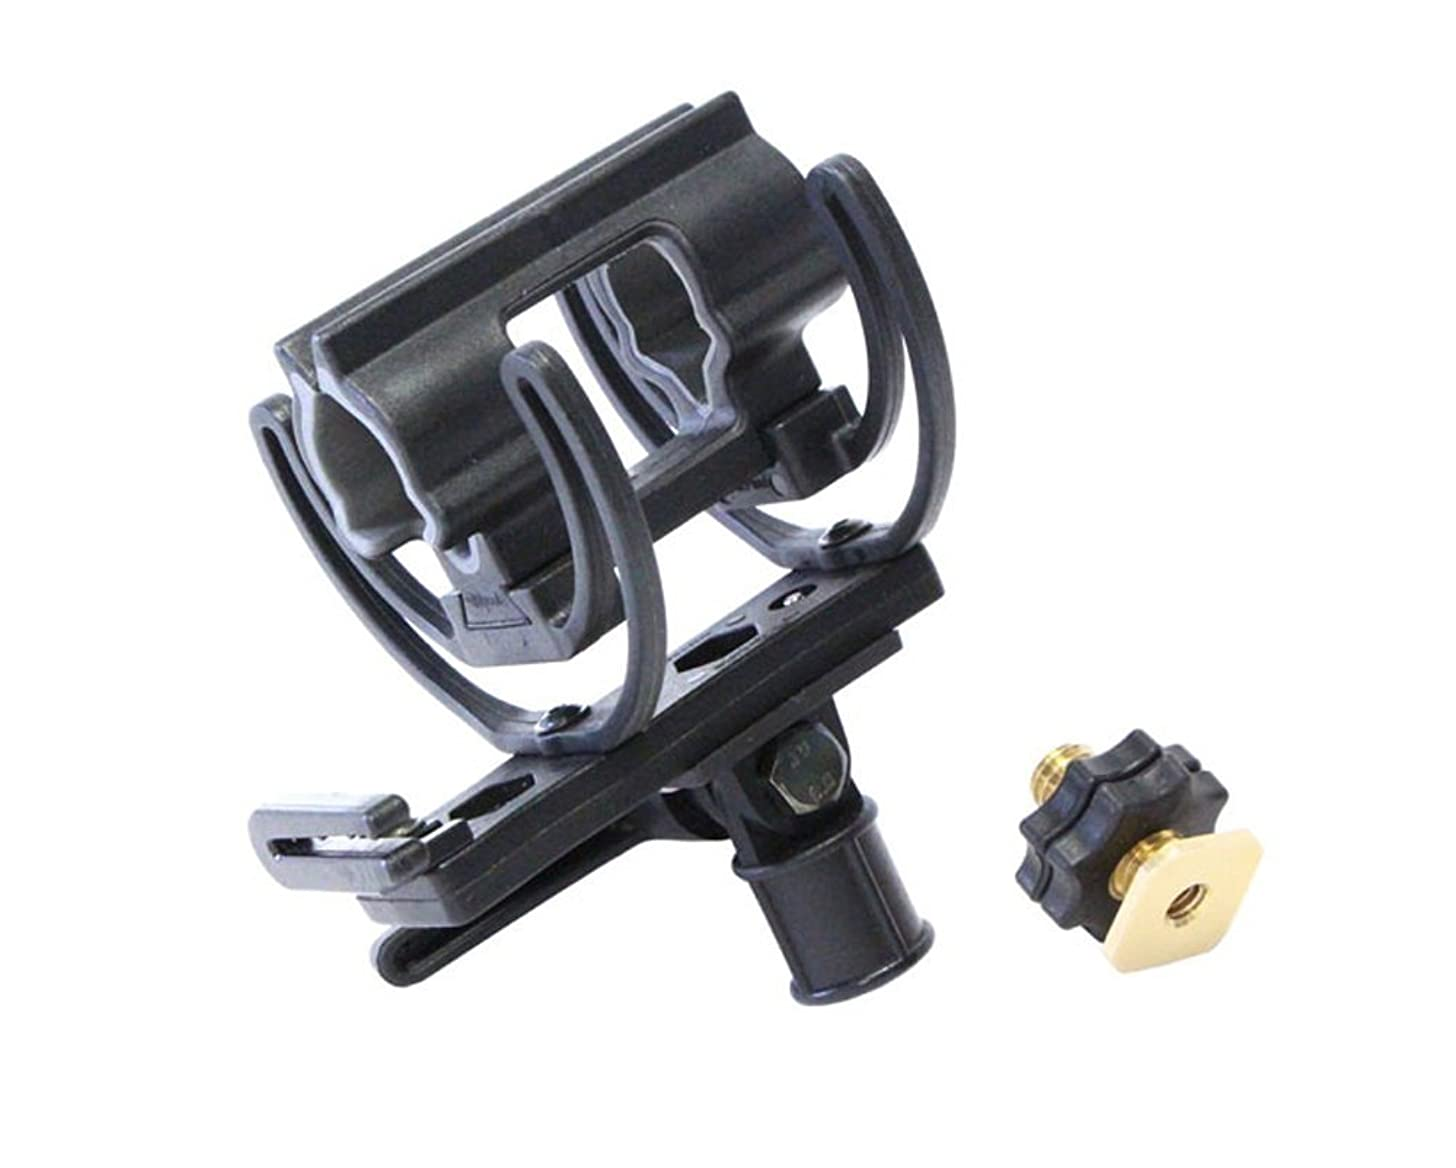 Rycote Universal Shotgun Microphone Mount for Cameras and Boom Poles